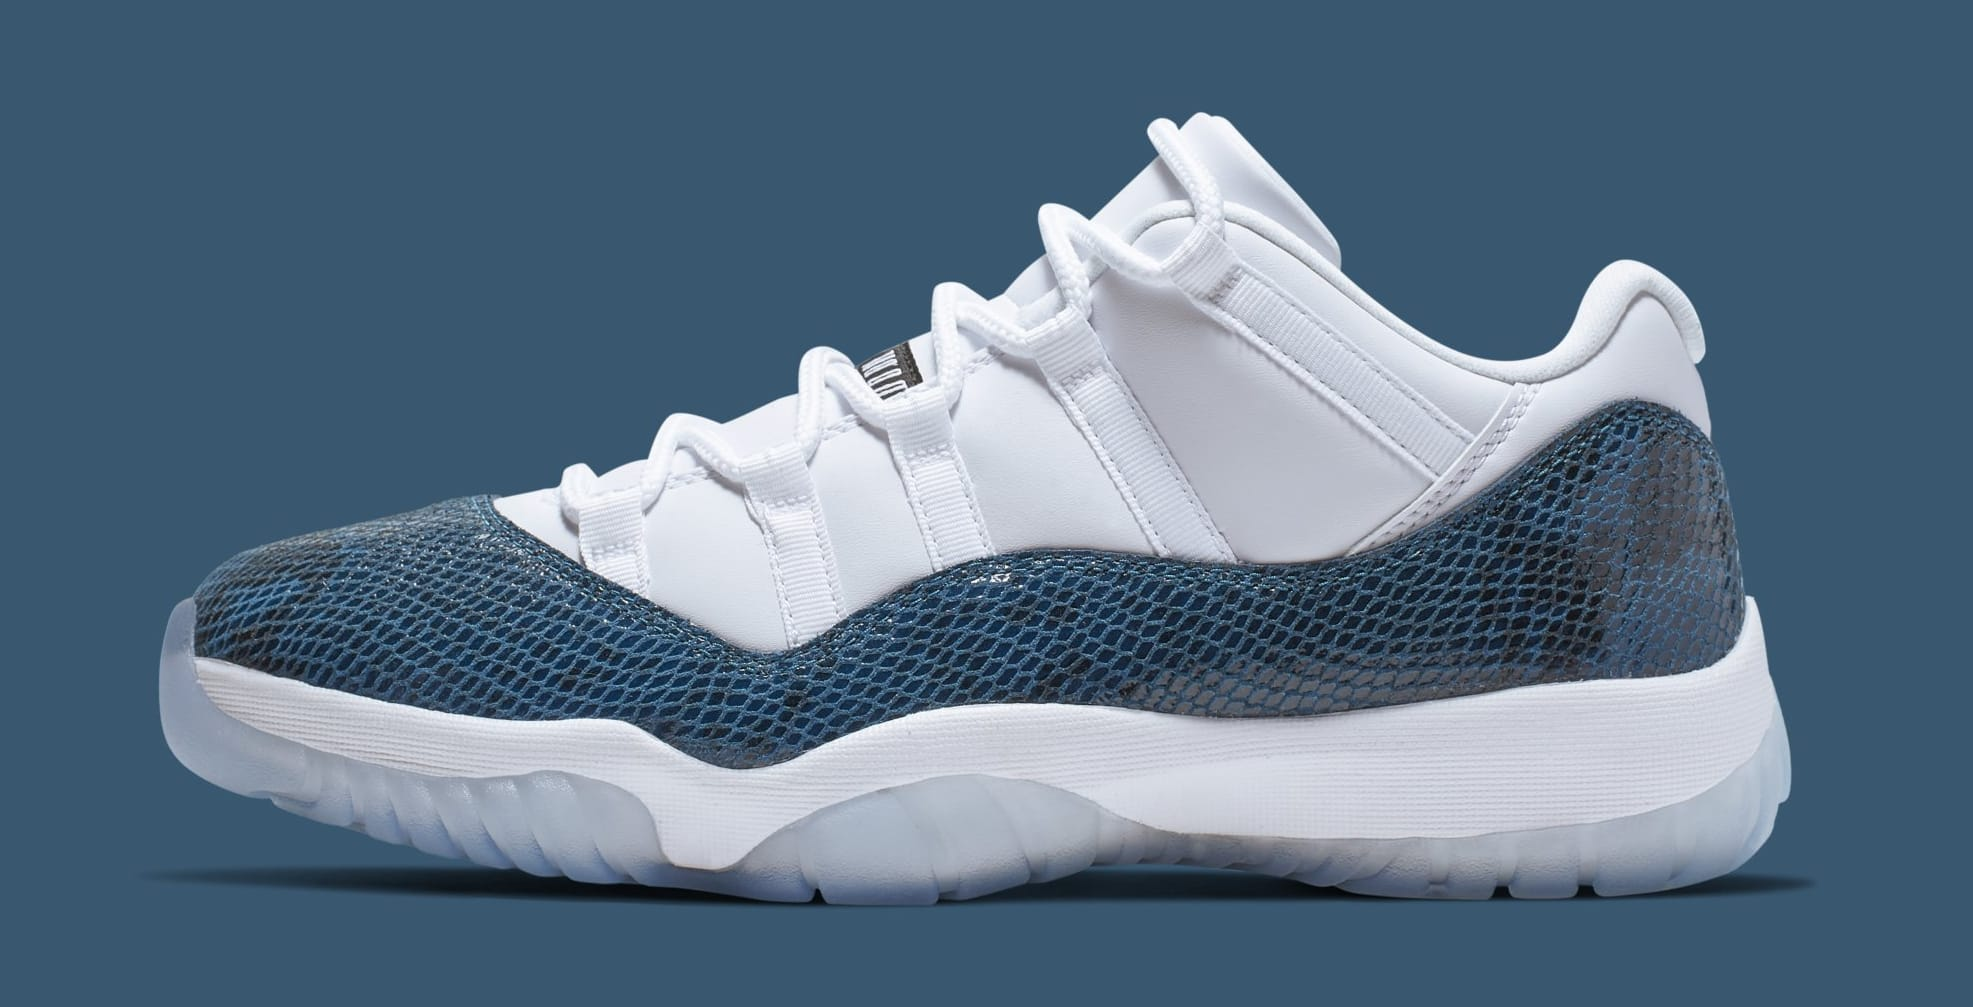 new style 21247 3c895 Air Jordan 11 Low  Blue Snakeskin  CD6846-102 (Lateral)